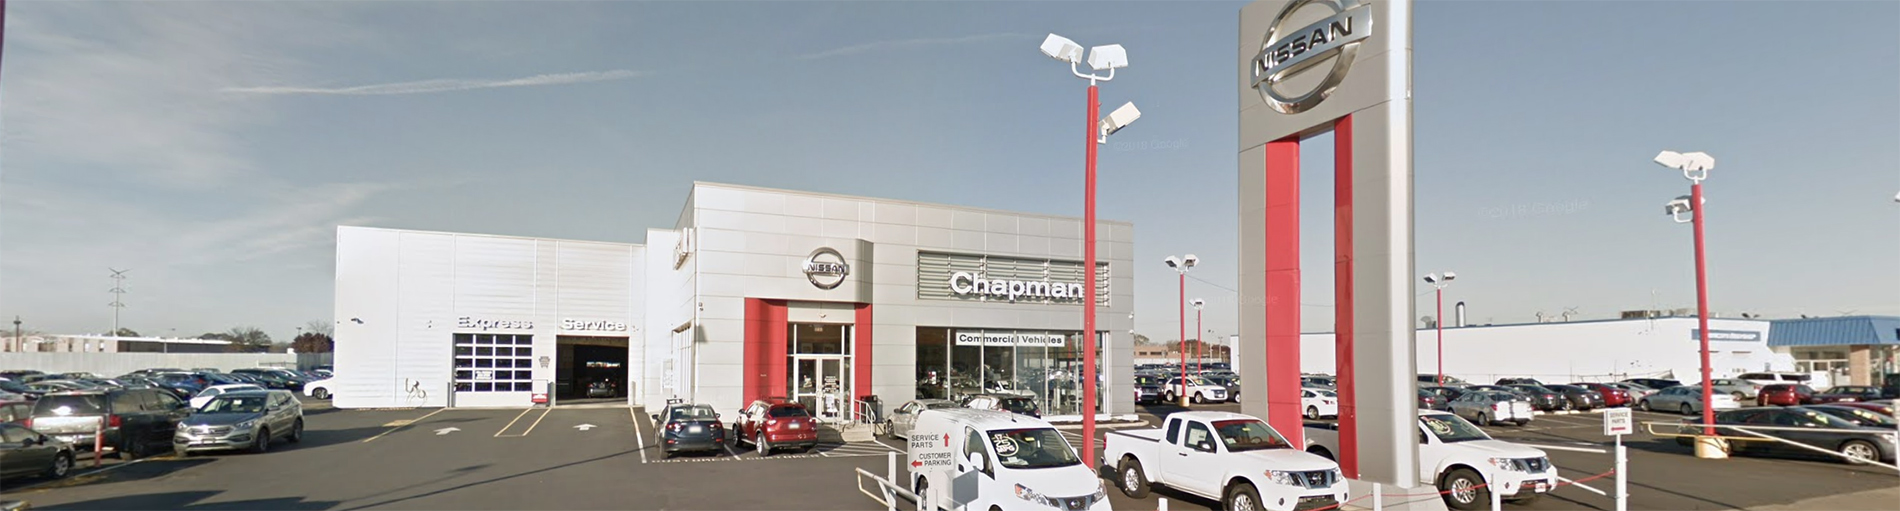 Chapman Nissan of Philadelphia